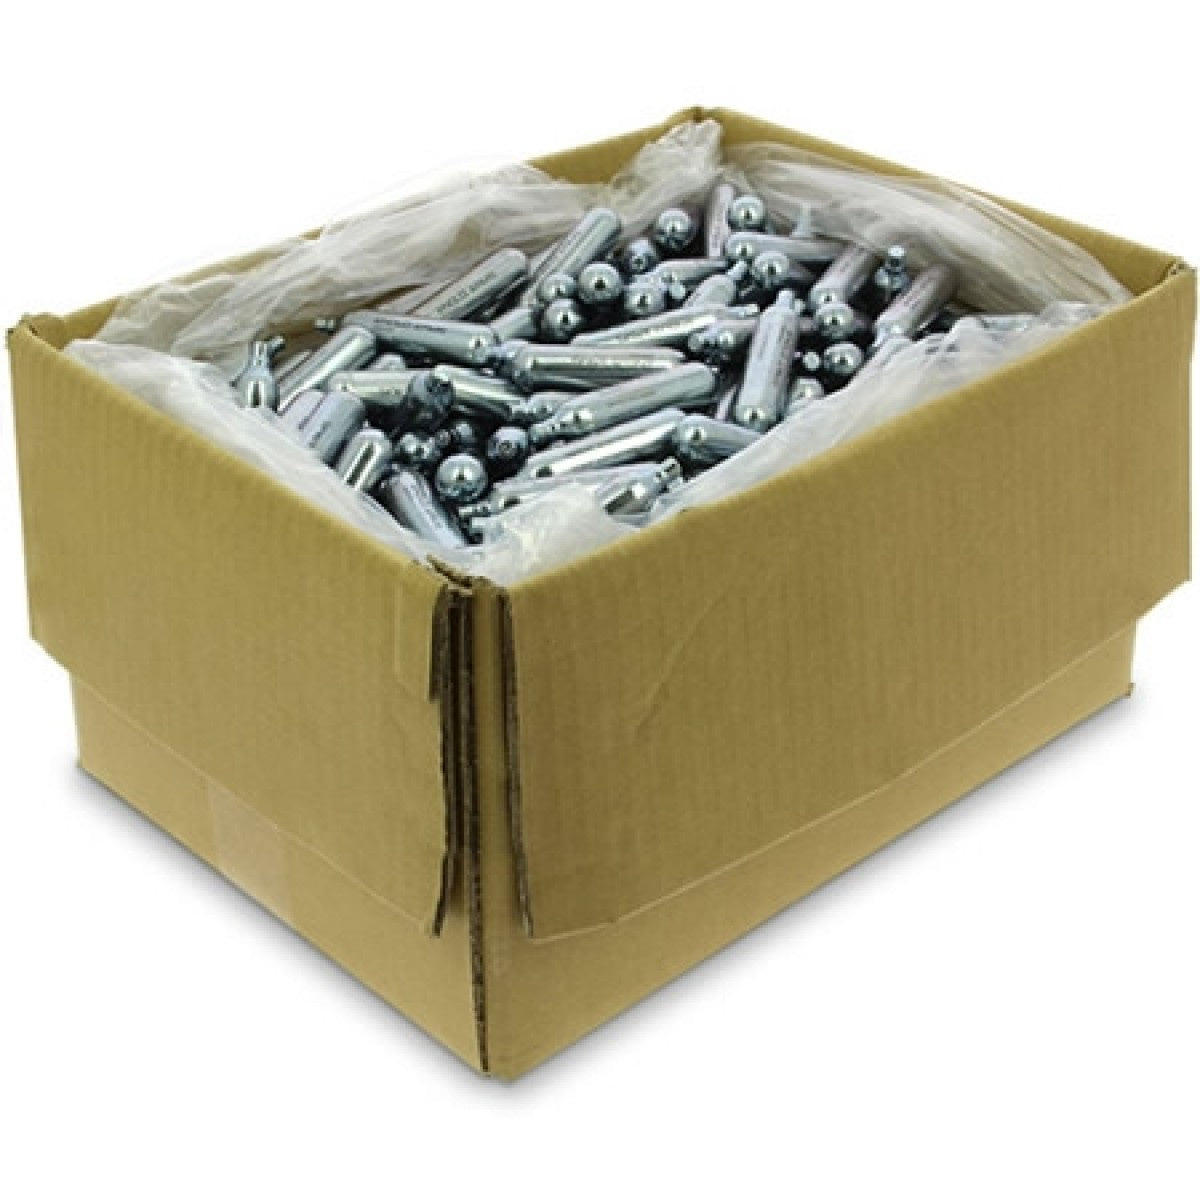 500 C02 12G GAS CARTRIDGES FOR PISTOL / RIFLE